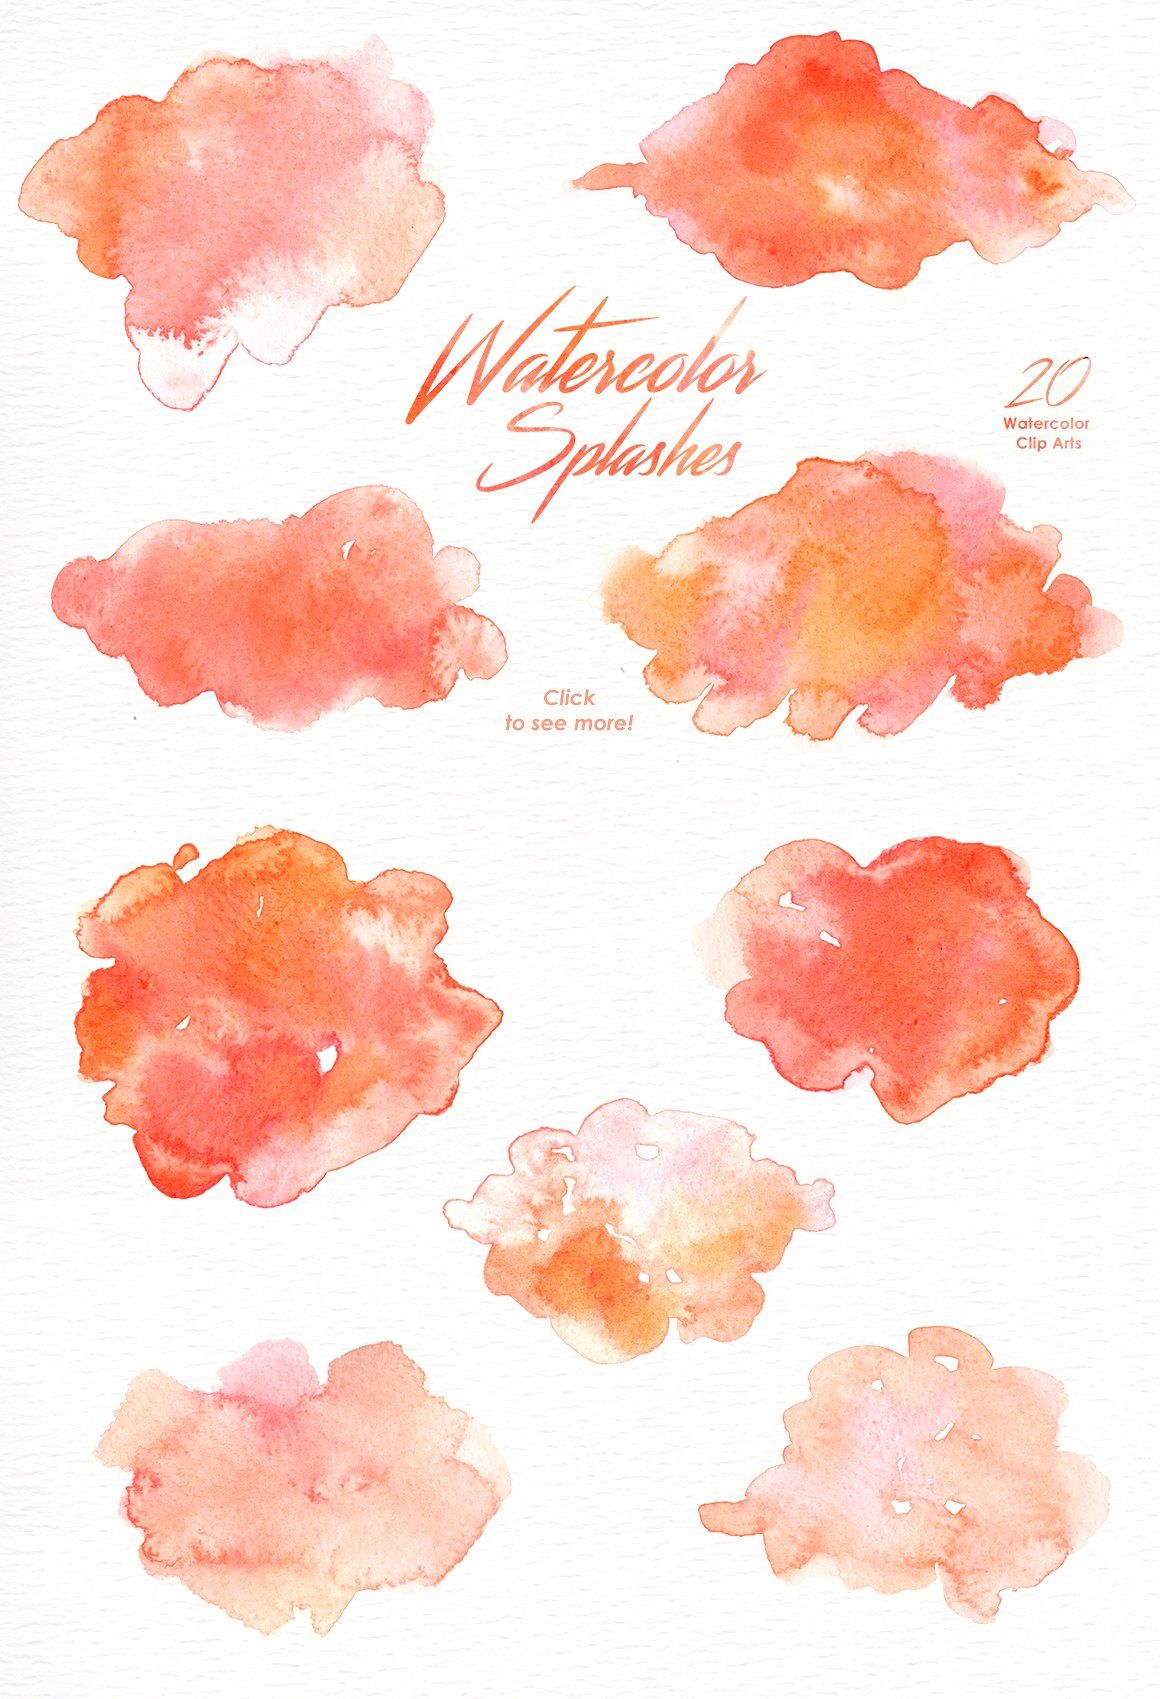 Peach Watercolor Splashes Clipart Hinh ảnh